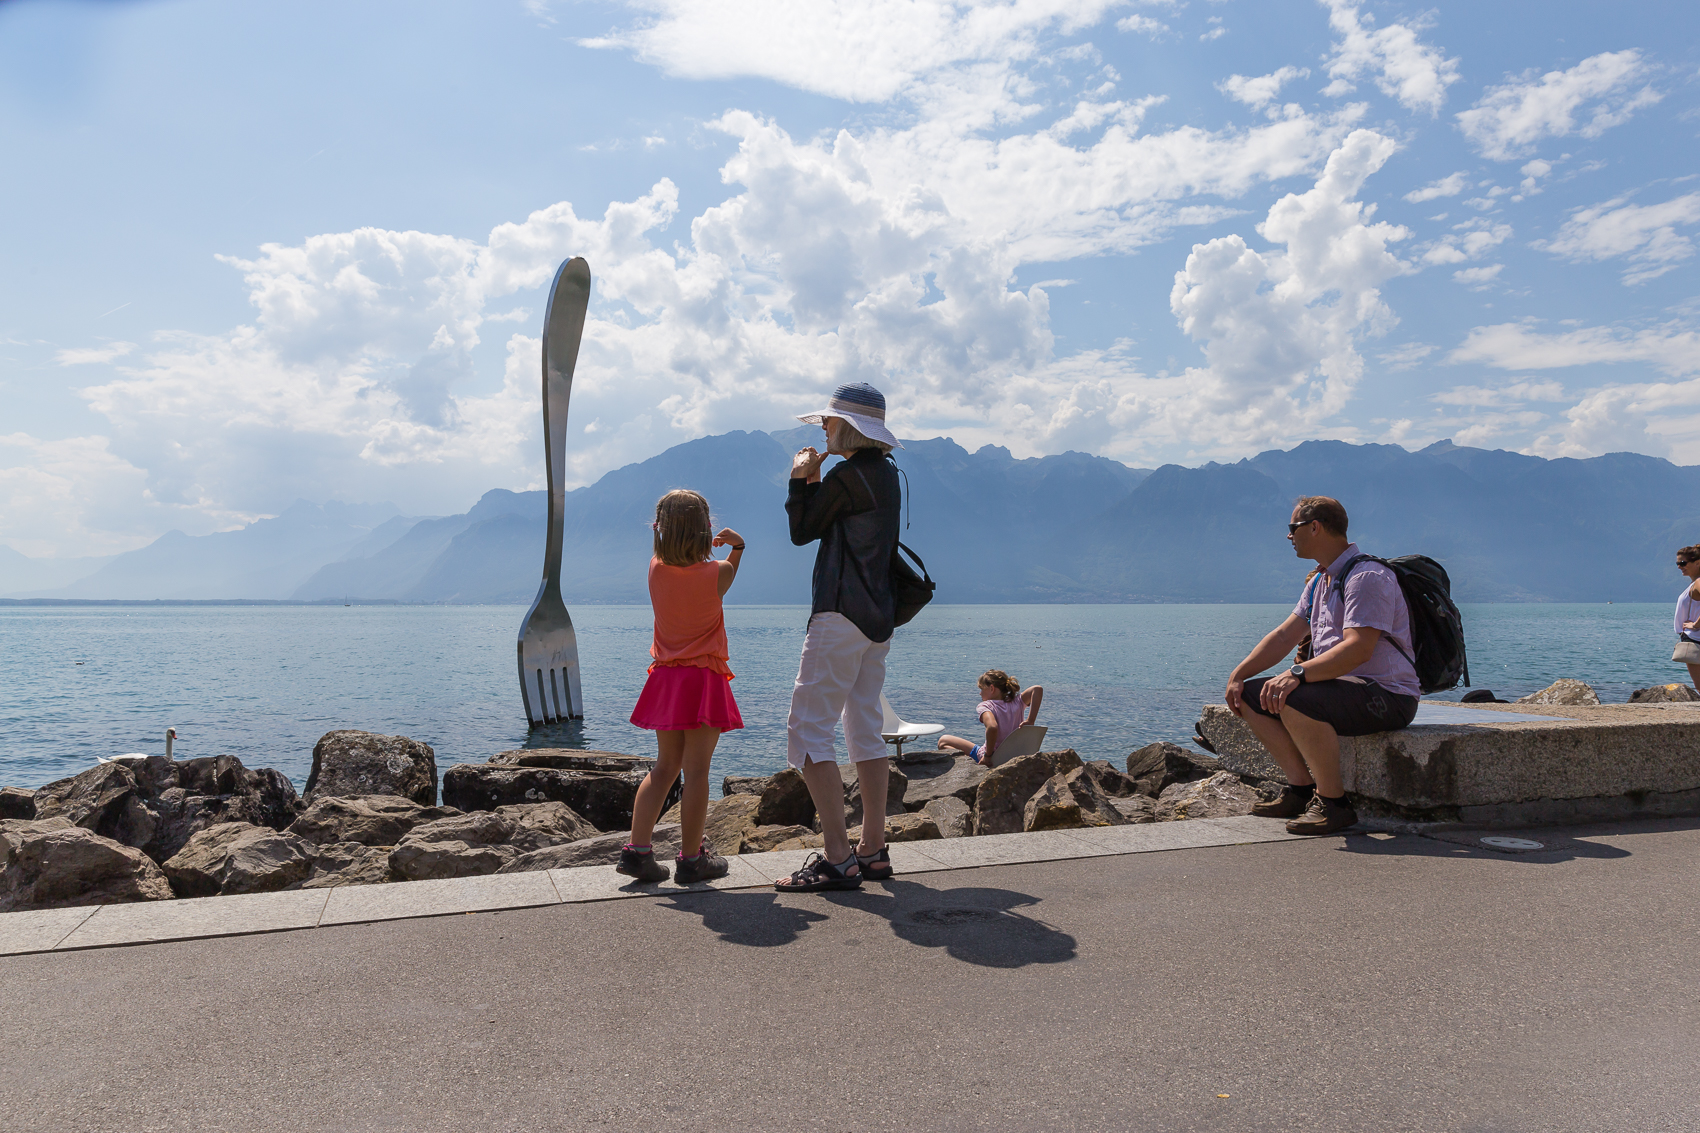 Off to Alimentarium along the shores of Lake Geneva. Part of the Nestlé group, the Alimentarium is the first museum in the world devoted exclusively to nutrition. Fun, exciting and interactive, it is one of our favourite places to visit.